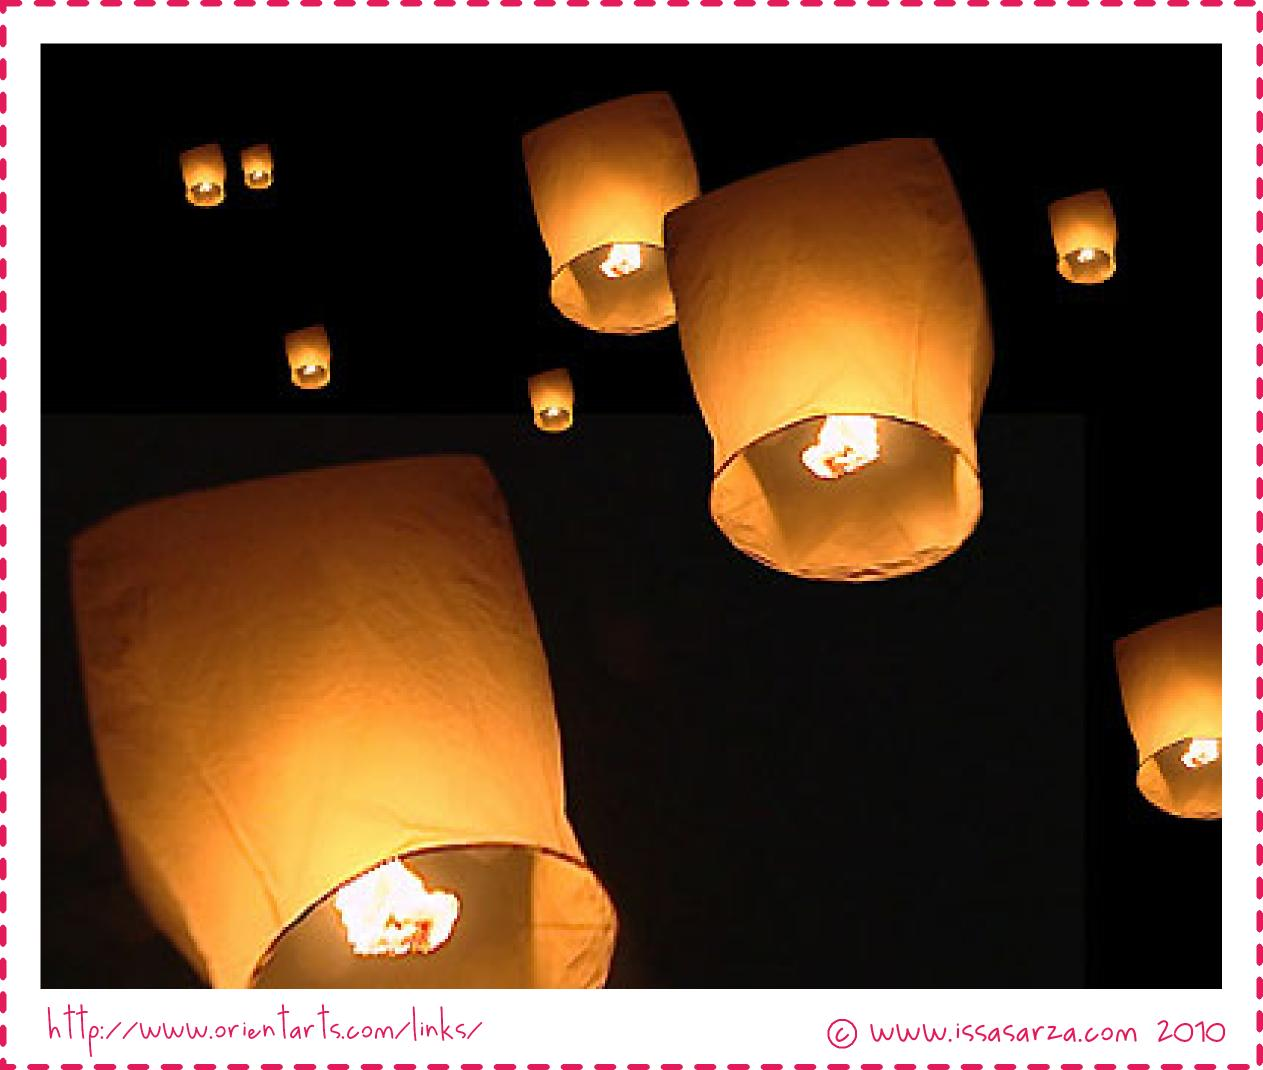 my innermost thoughts floating sky lantern just like in the rapunzel